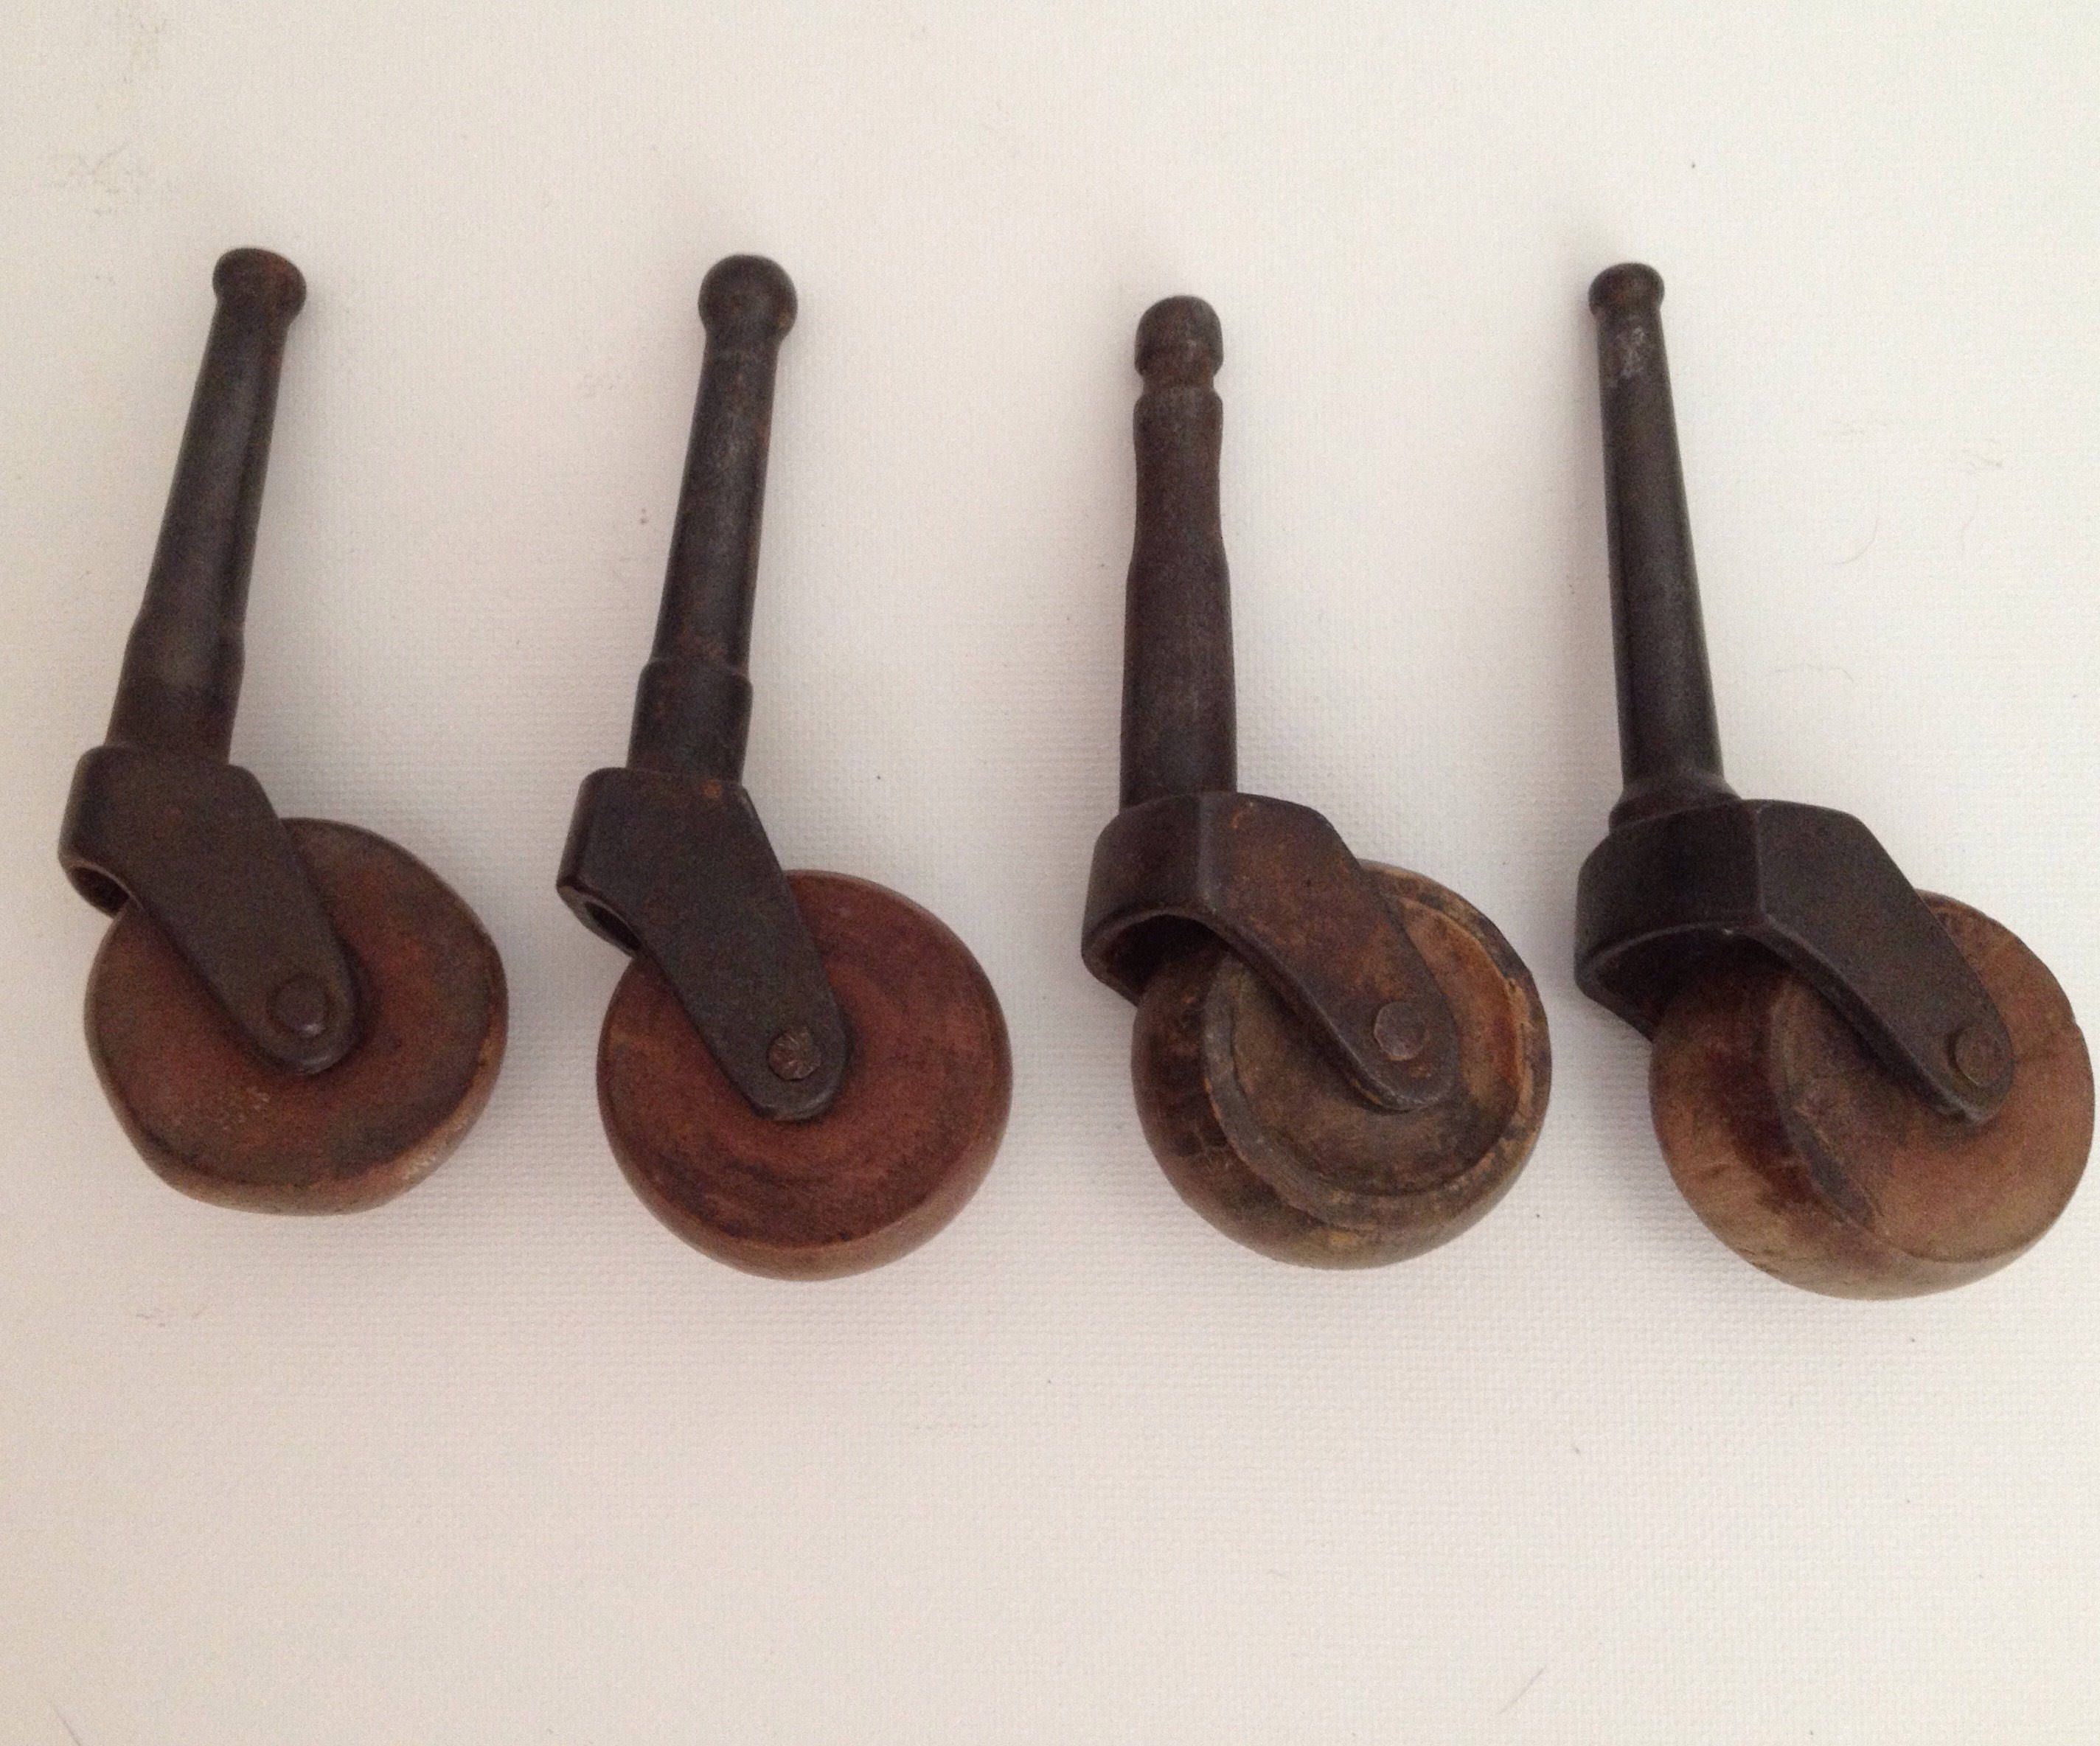 Antique Stem Caster Wheels 1 1 2 Inch Lot Of 4 Wooden Peg Wheel Casters Wood Industrial Vintage Hardware By Aroundth Vintage Hardware Stem Casters Vintage Wood